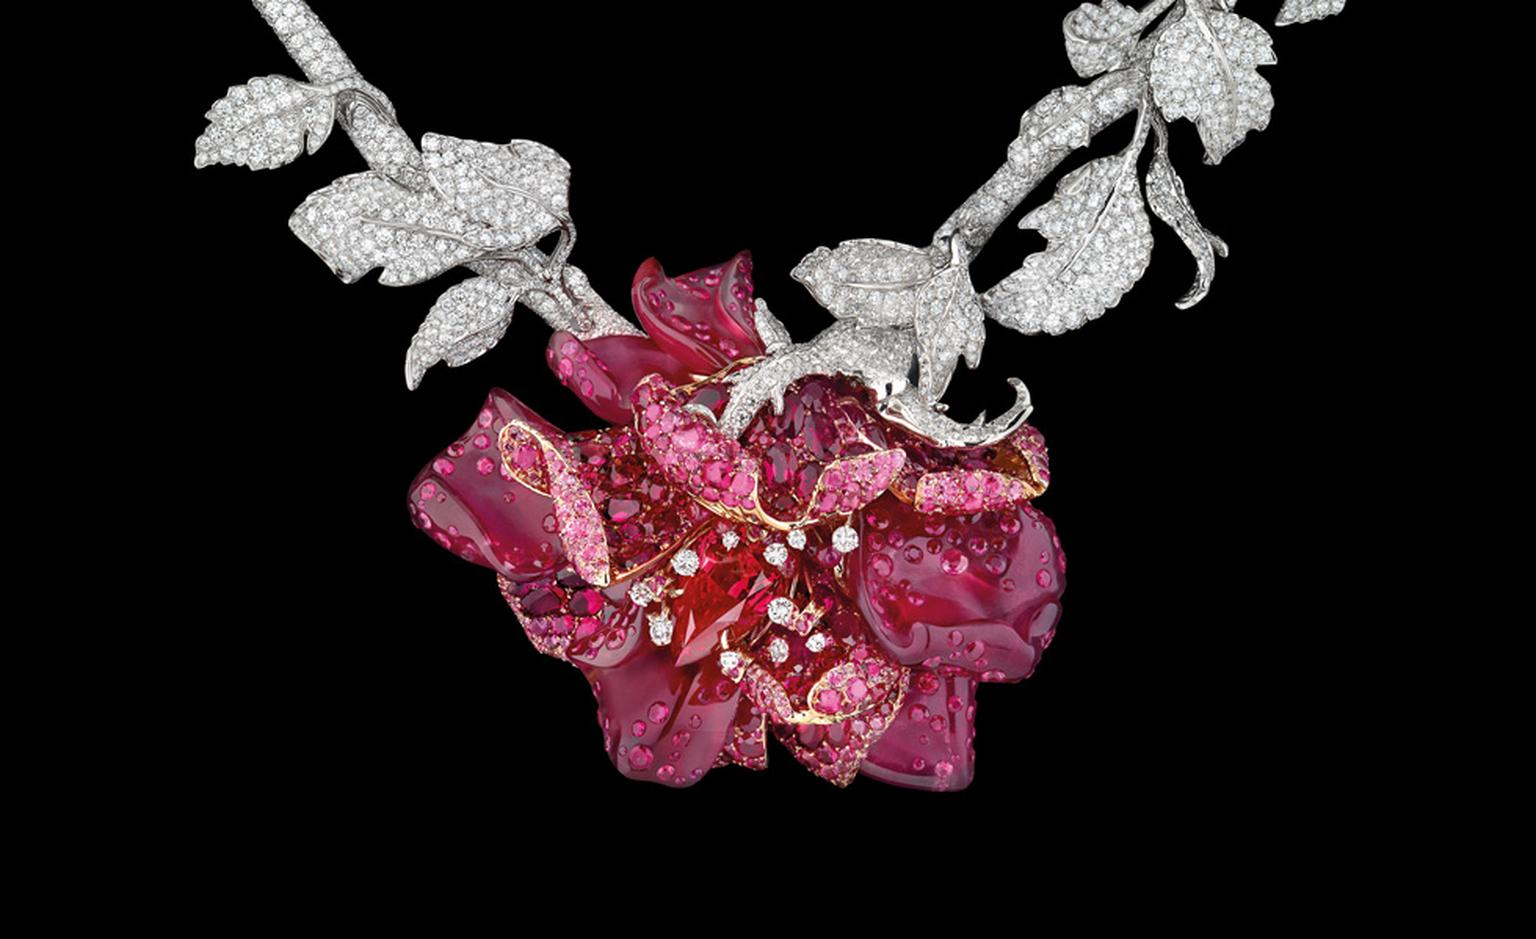 Dior Fine Jewellery Le Bal de Roses necklace by Victoire de Castellane